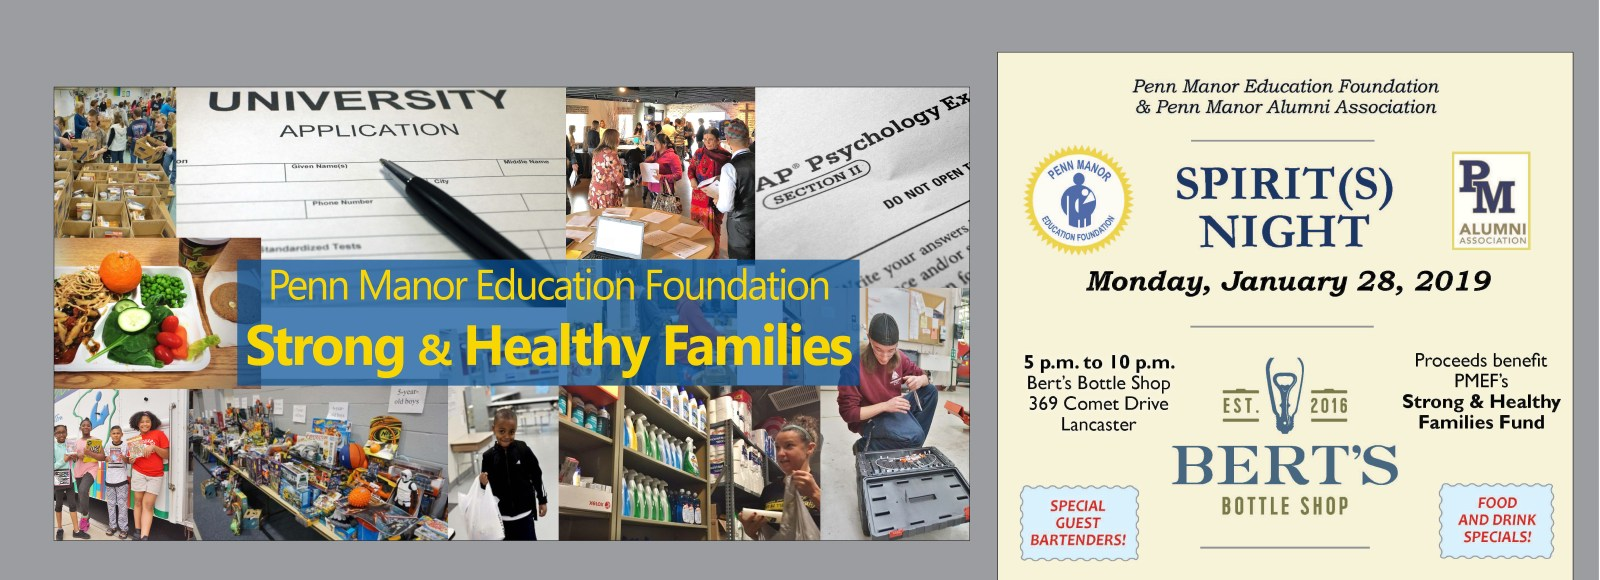 Jan. 28 Spirit(s) Night to benefit Strong & Healthy Families